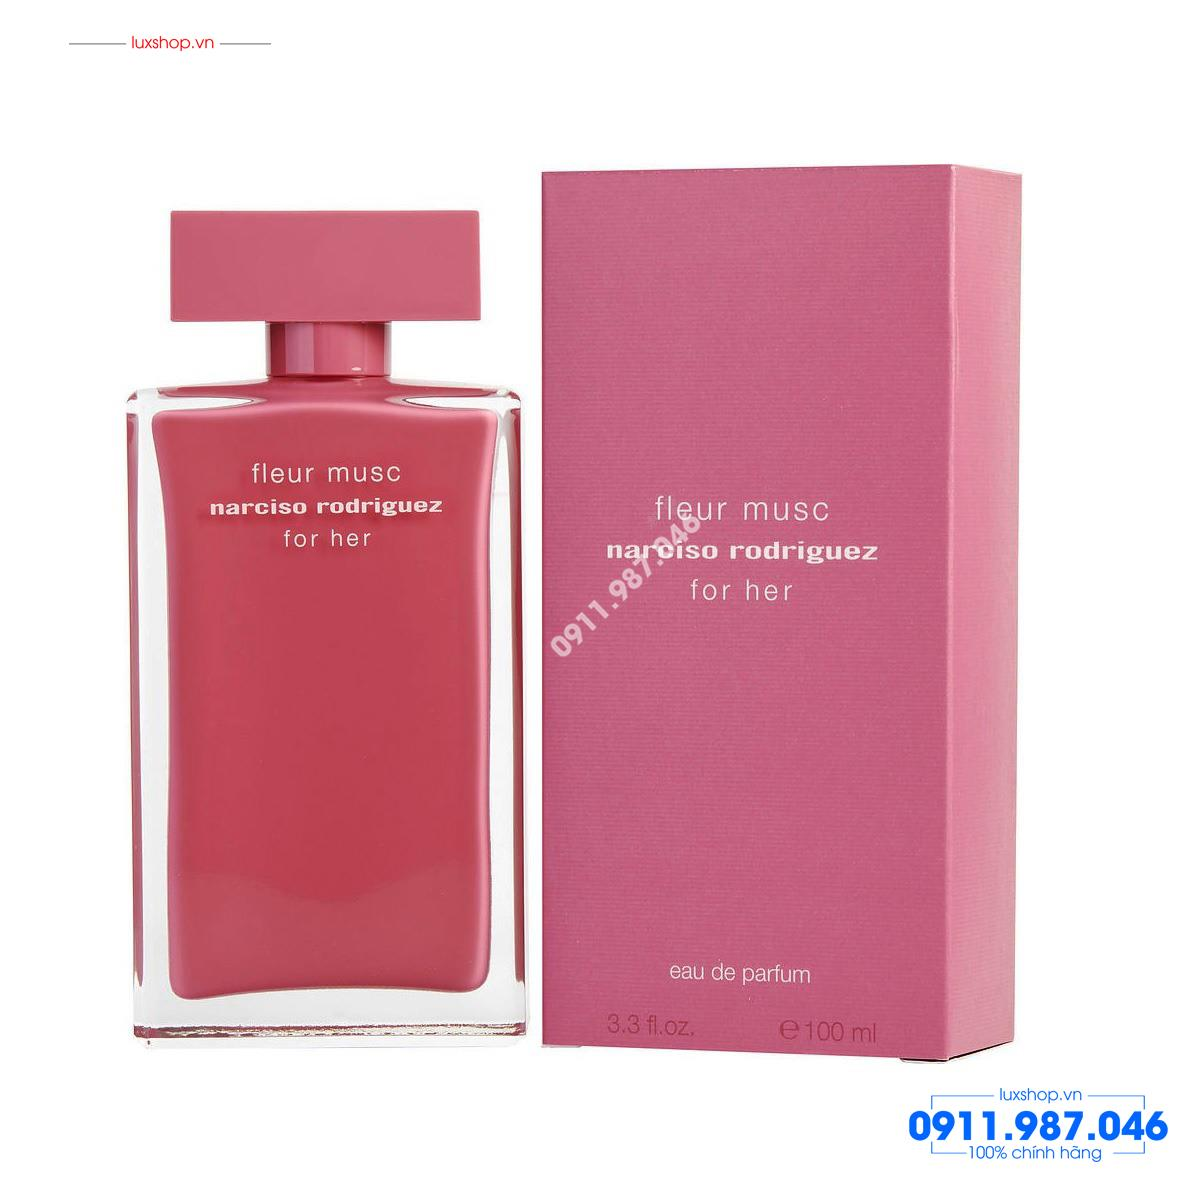 nuoc-hoa-nu-narciso-rodriguez-for-her-fleur-musc-edp-100ml-chinh-hang-my-l101946